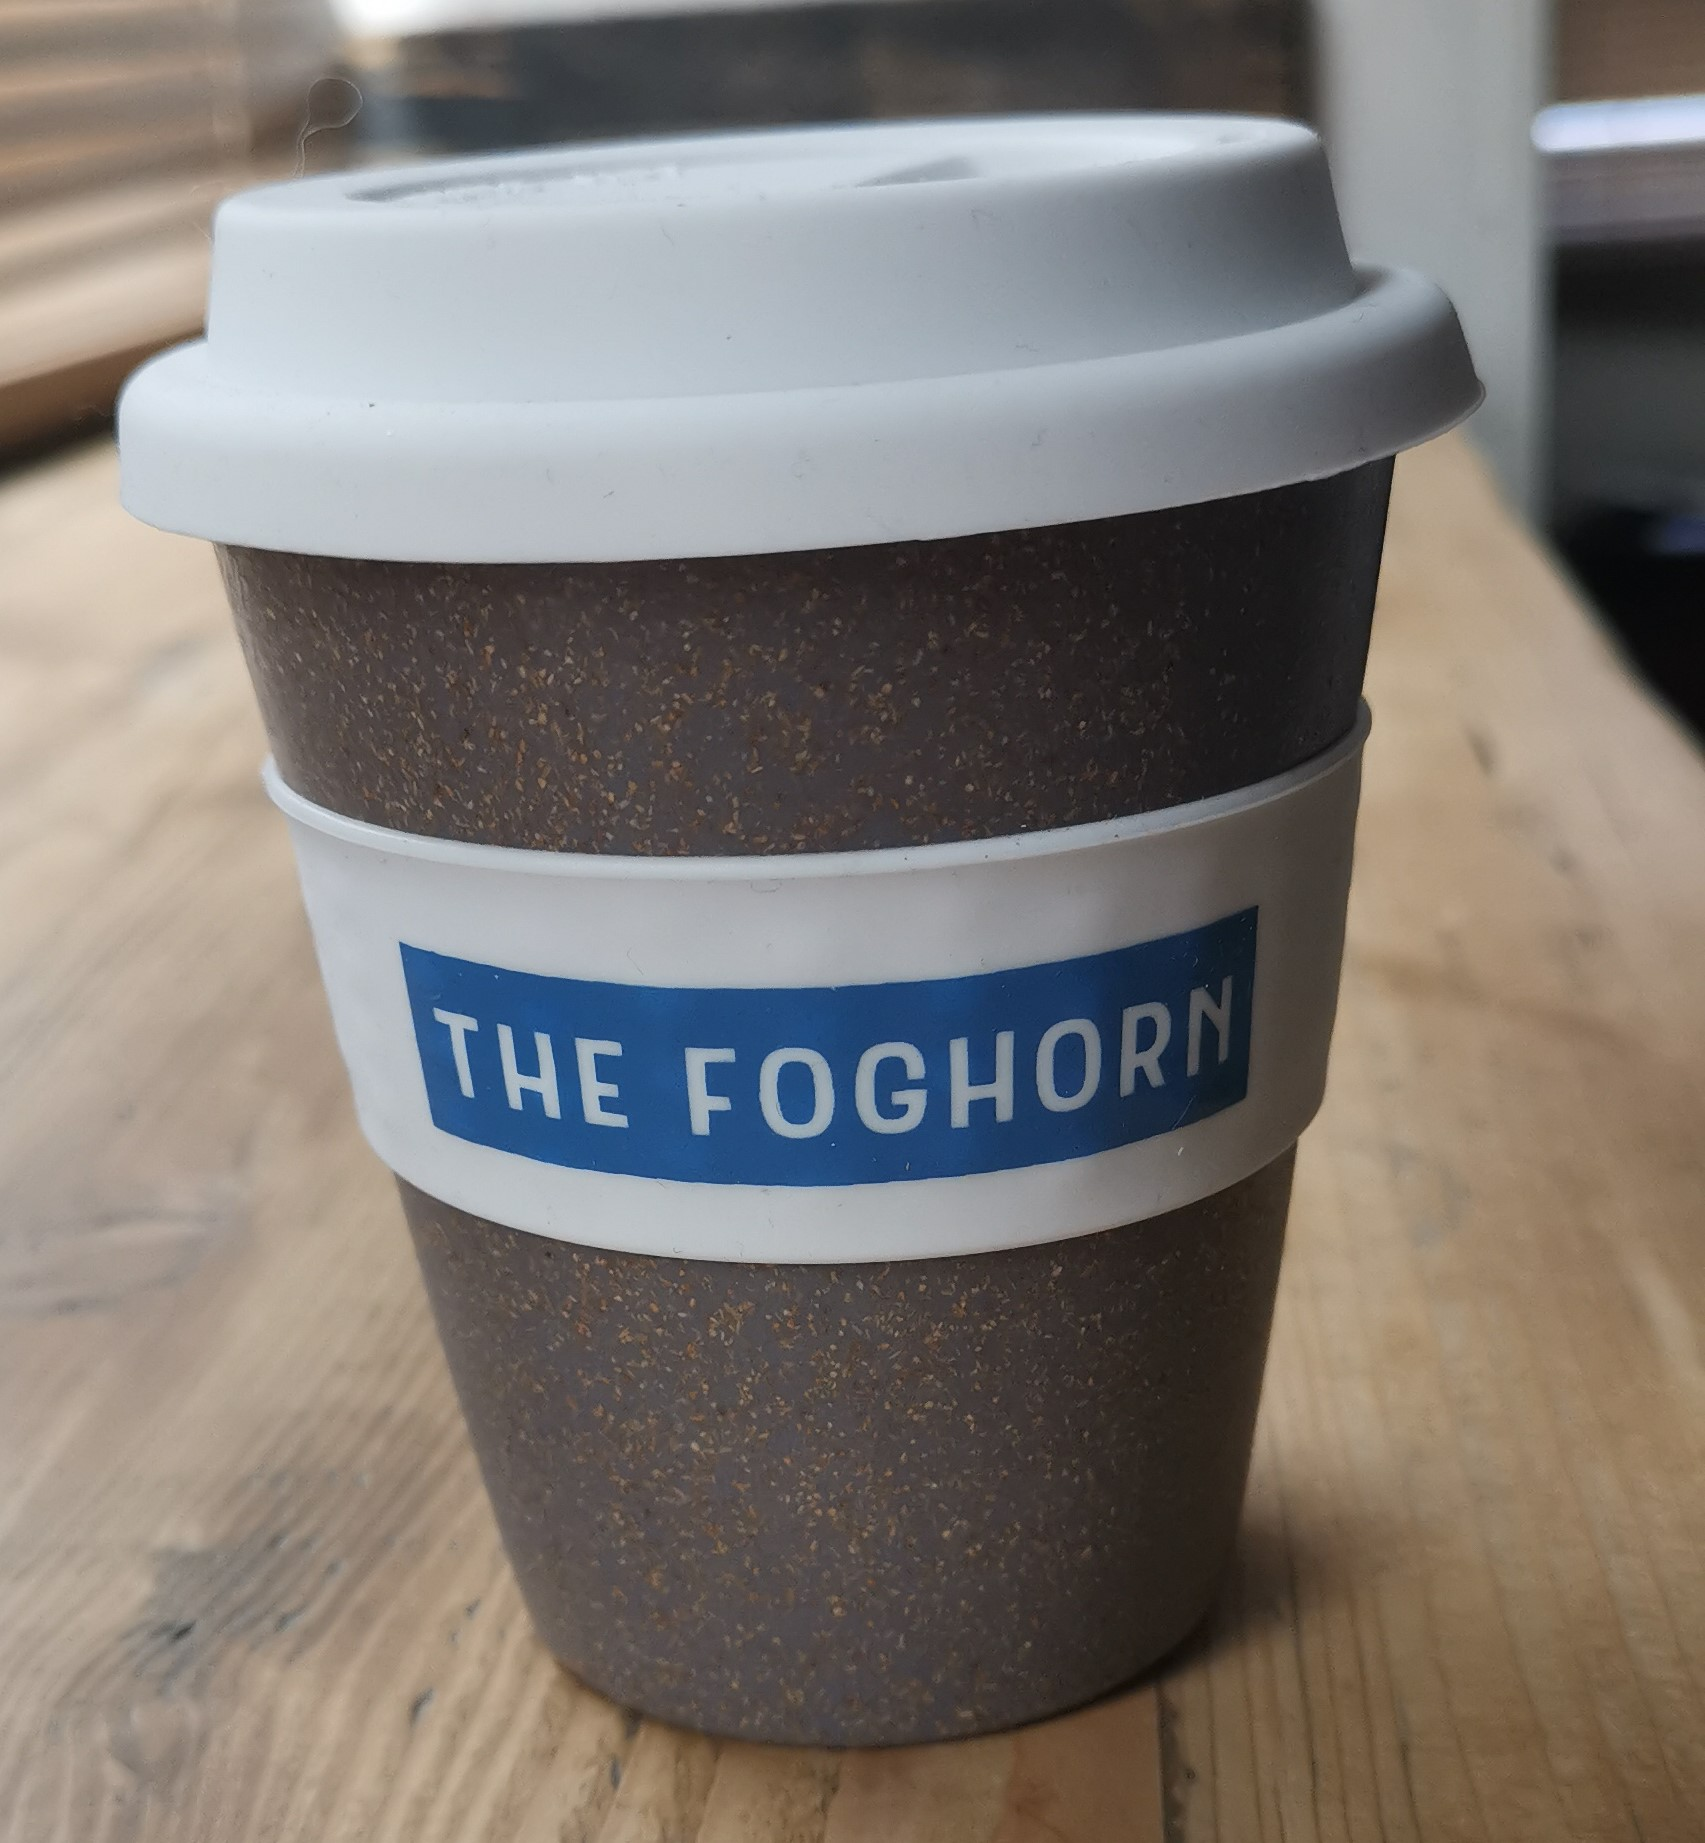 The Foghorn Coffee Cup